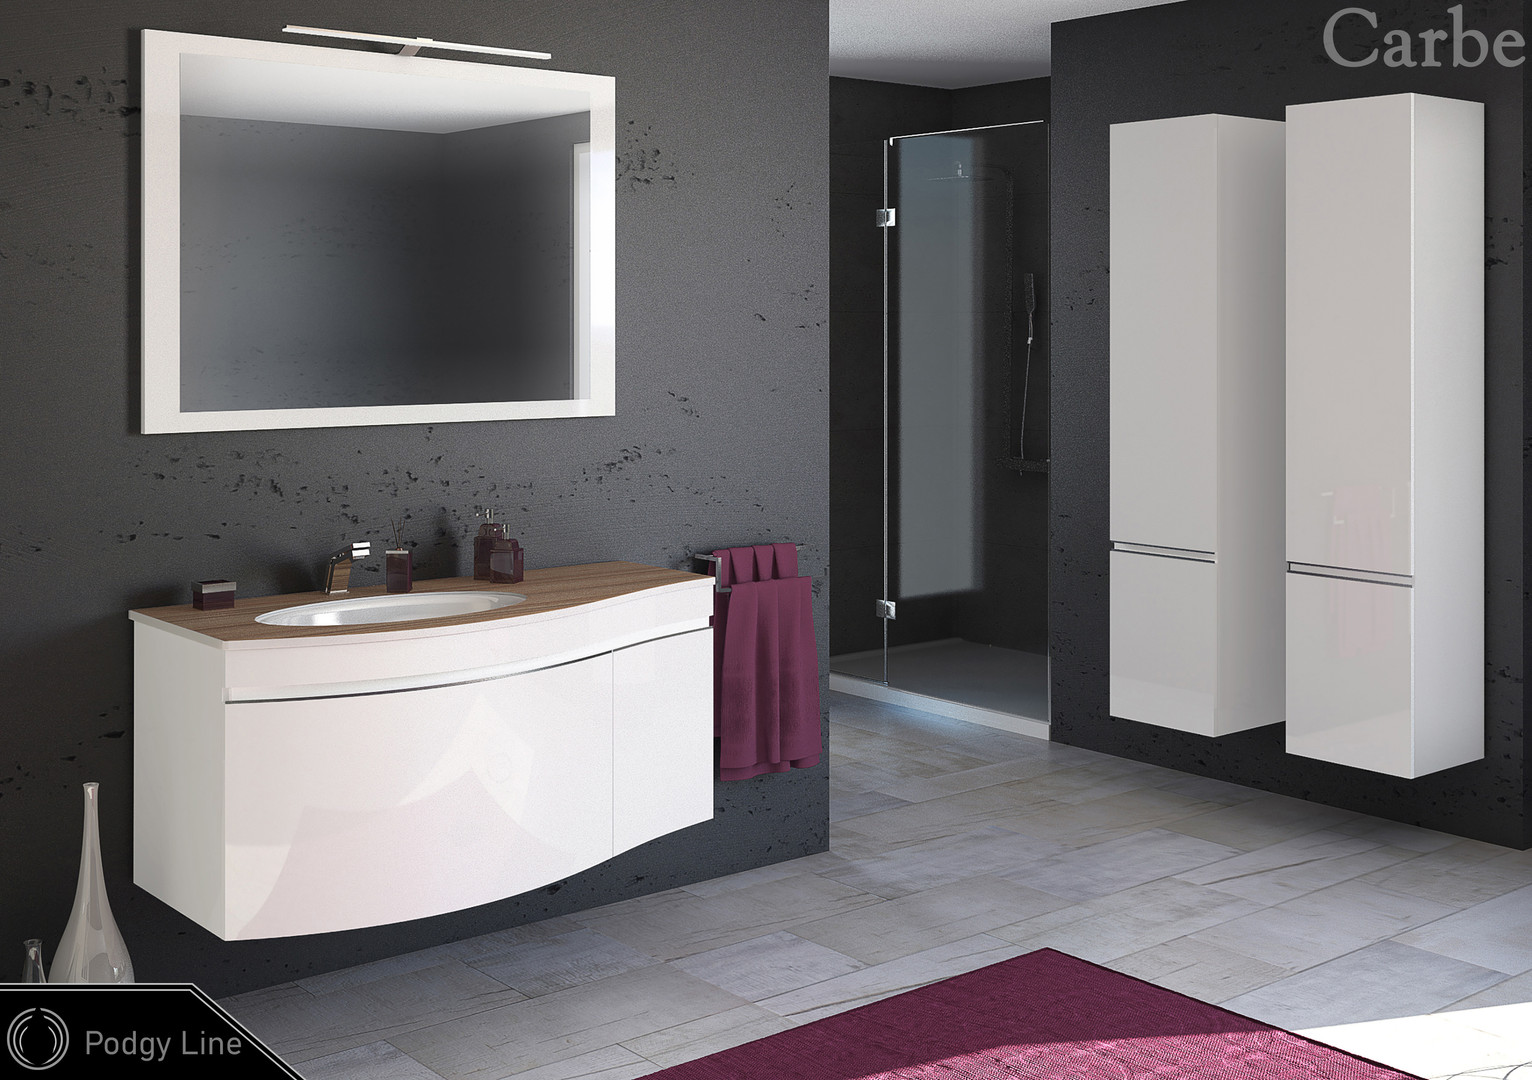 PodgyLine - Artic White HG, HPL Top - Dubai Ebony, Ceramic Washbasin, Soft Closing